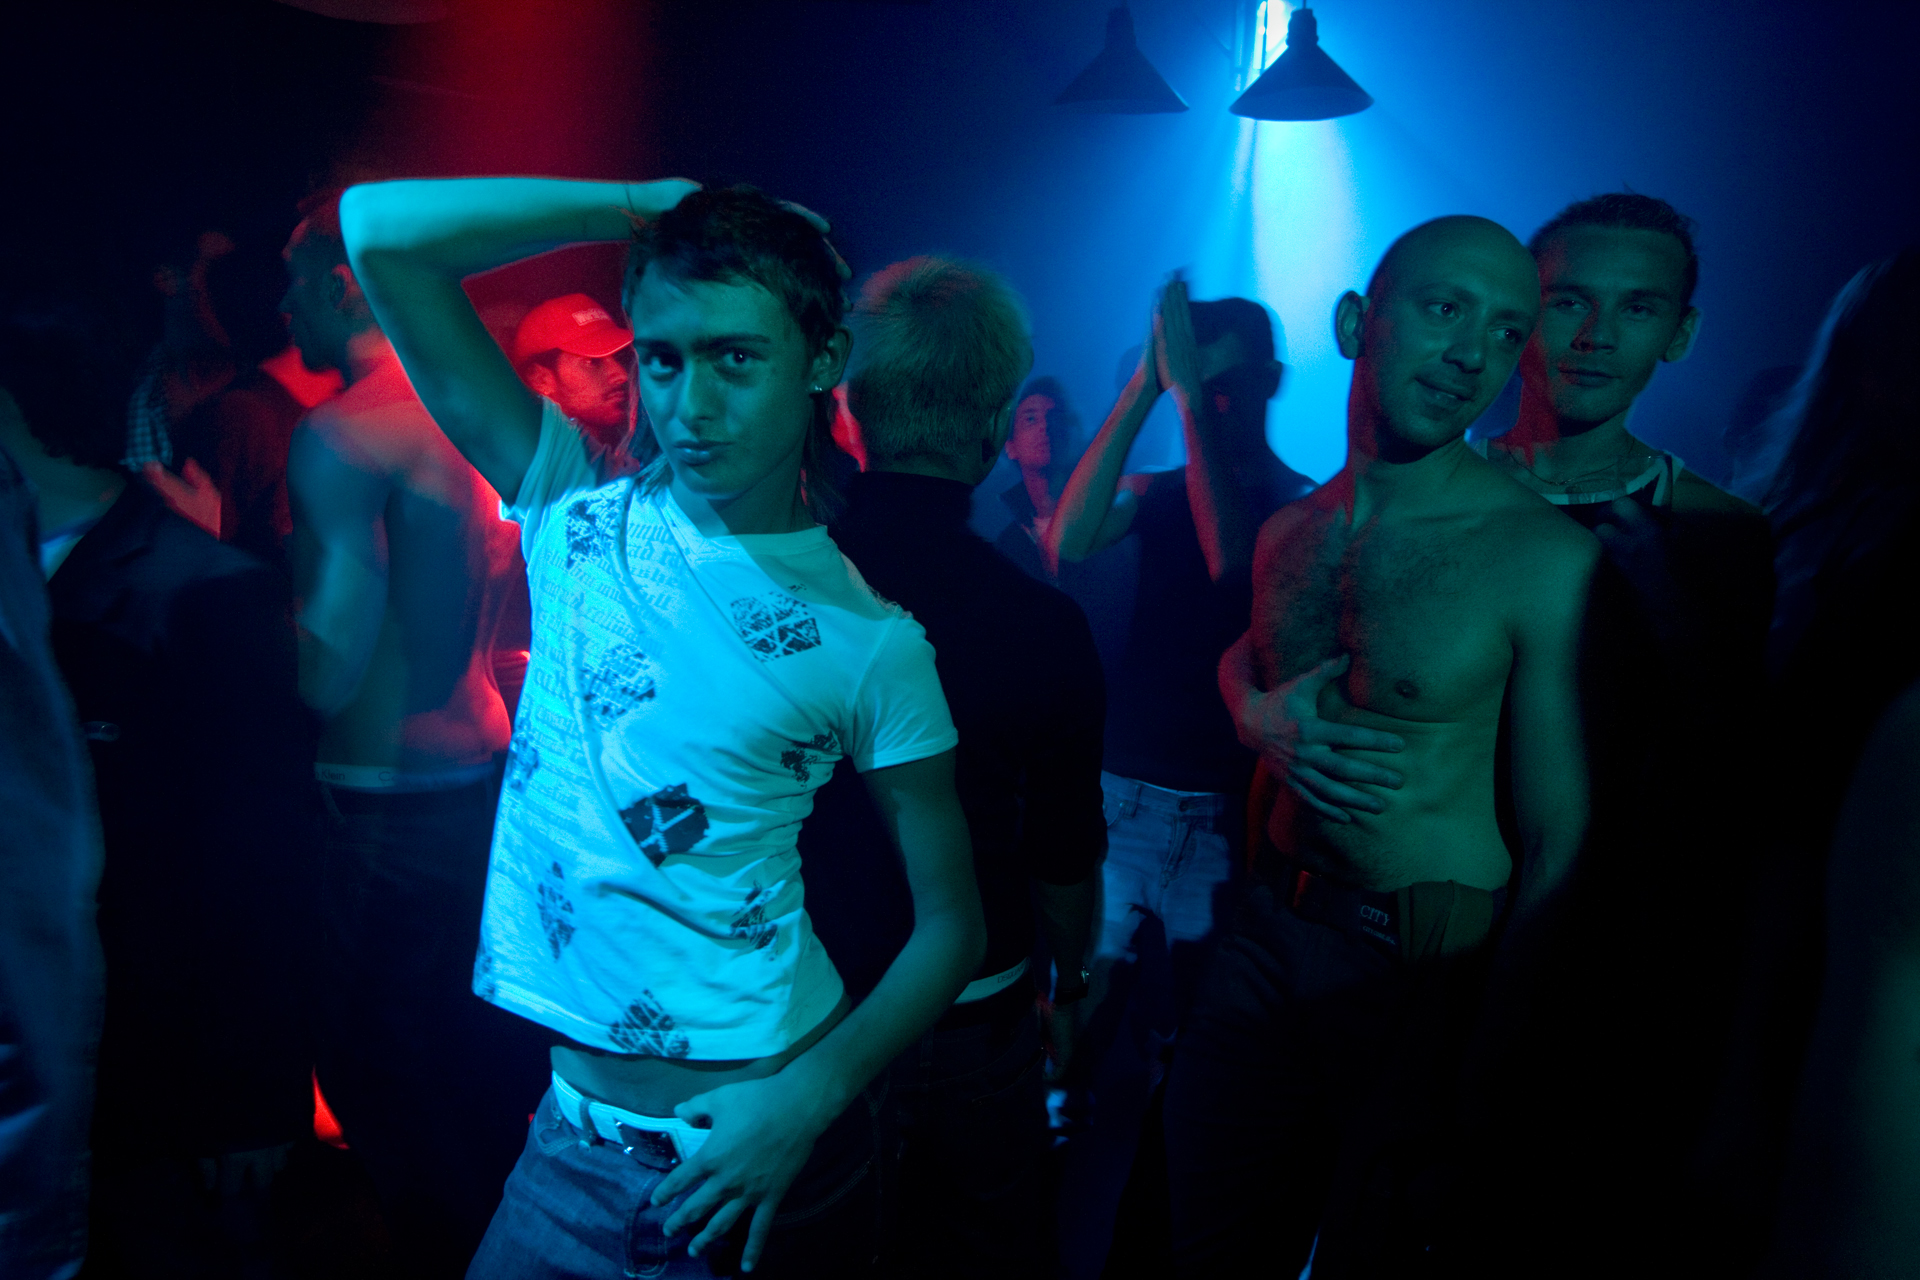 4:59AM - Increased exposure to the west has lessened many former social taboos; homosexuals are now free to express themselves openly and enjoy many of their own upscale nightclubs.